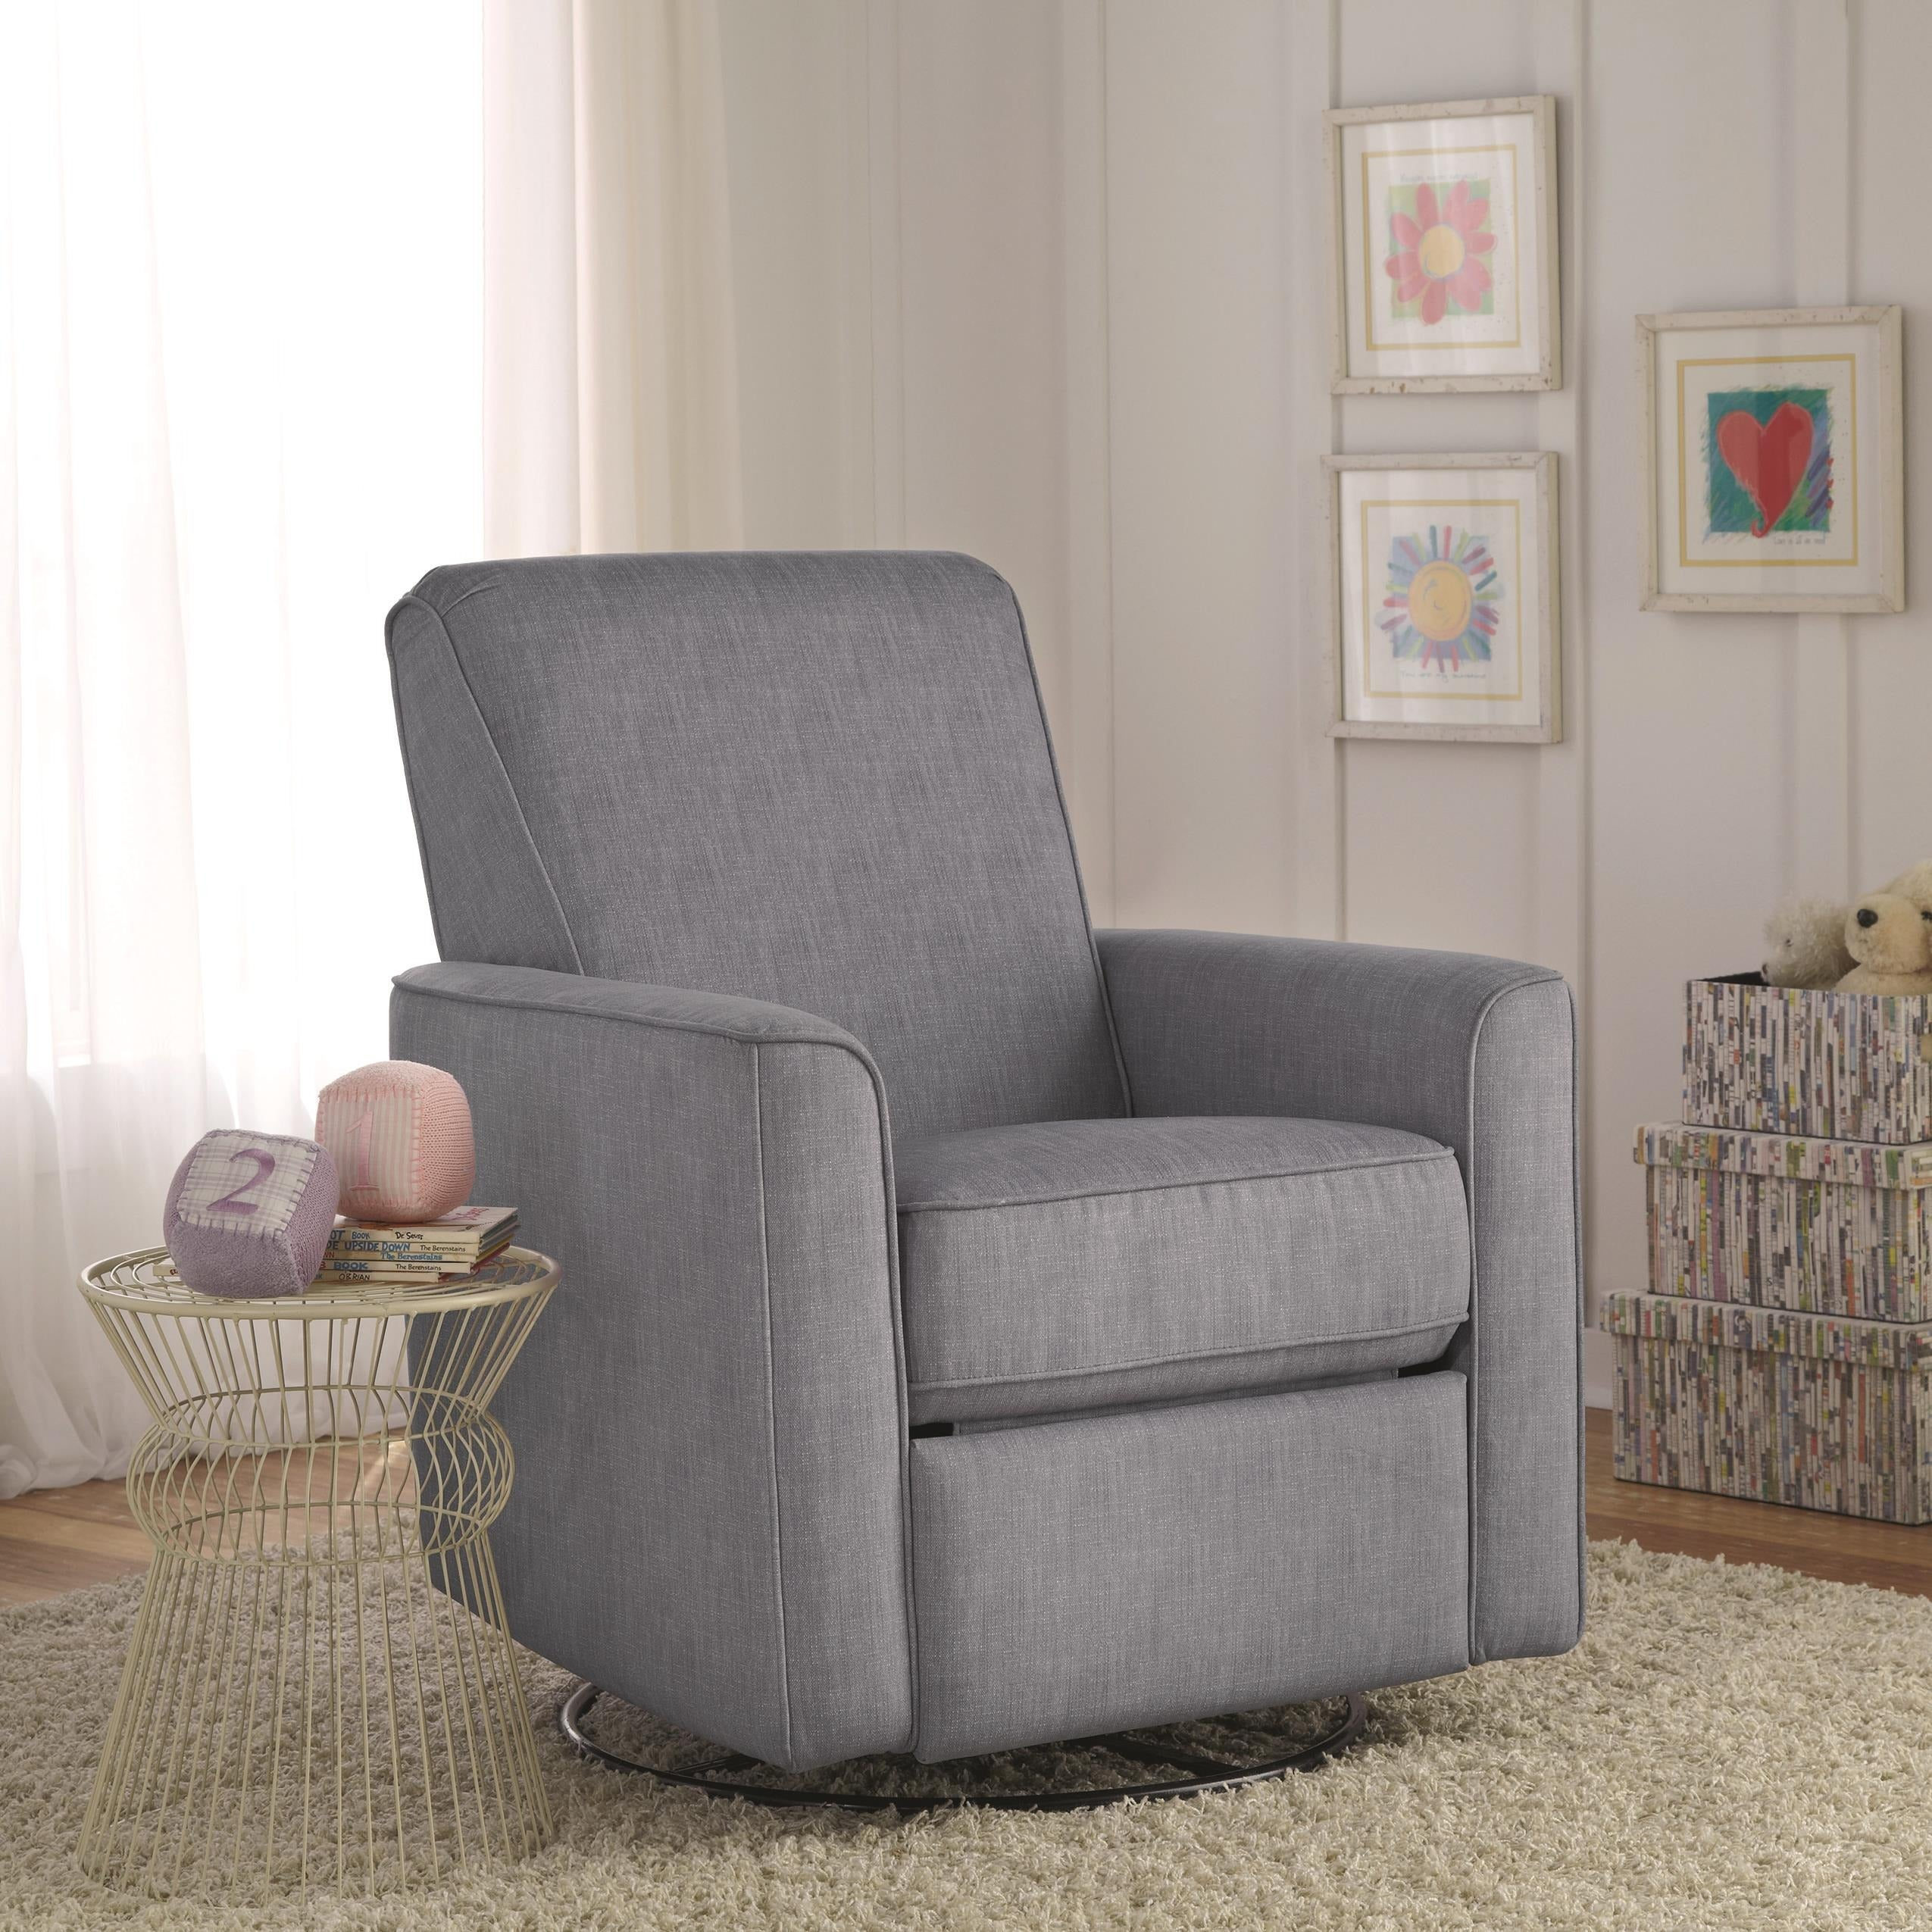 Shop zoey grey nursery swivel glider recliner chair on sale ships to canada overstock ca 10054009